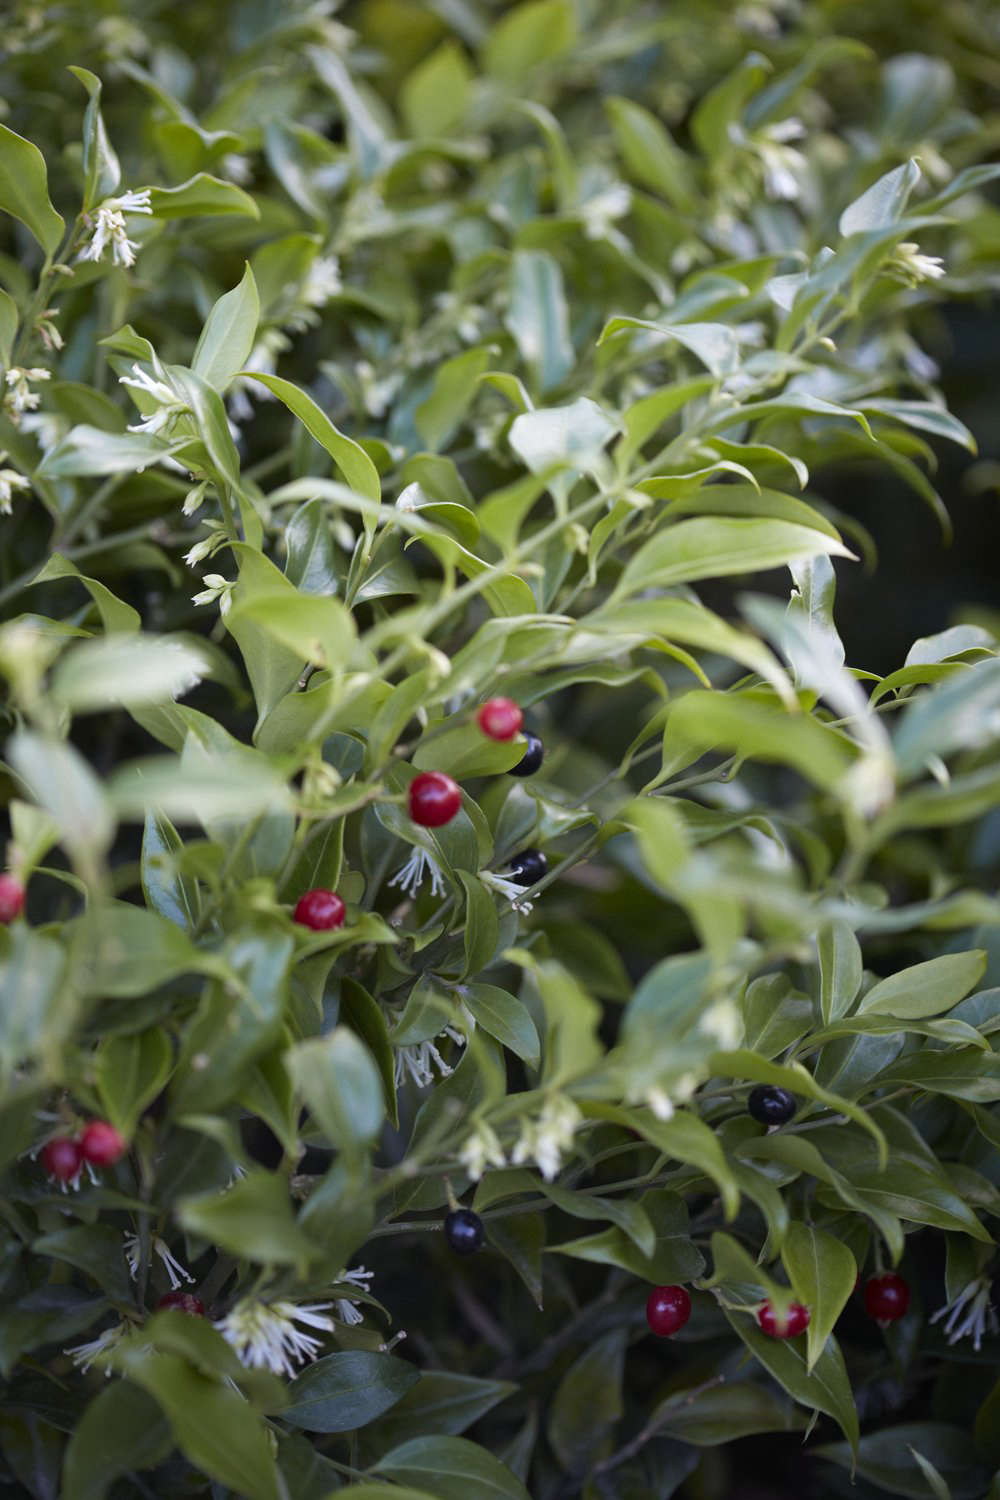 Sarcococca ruscifolia var. chinensis is a favorite with flower arrangers, with its notably long vase life.